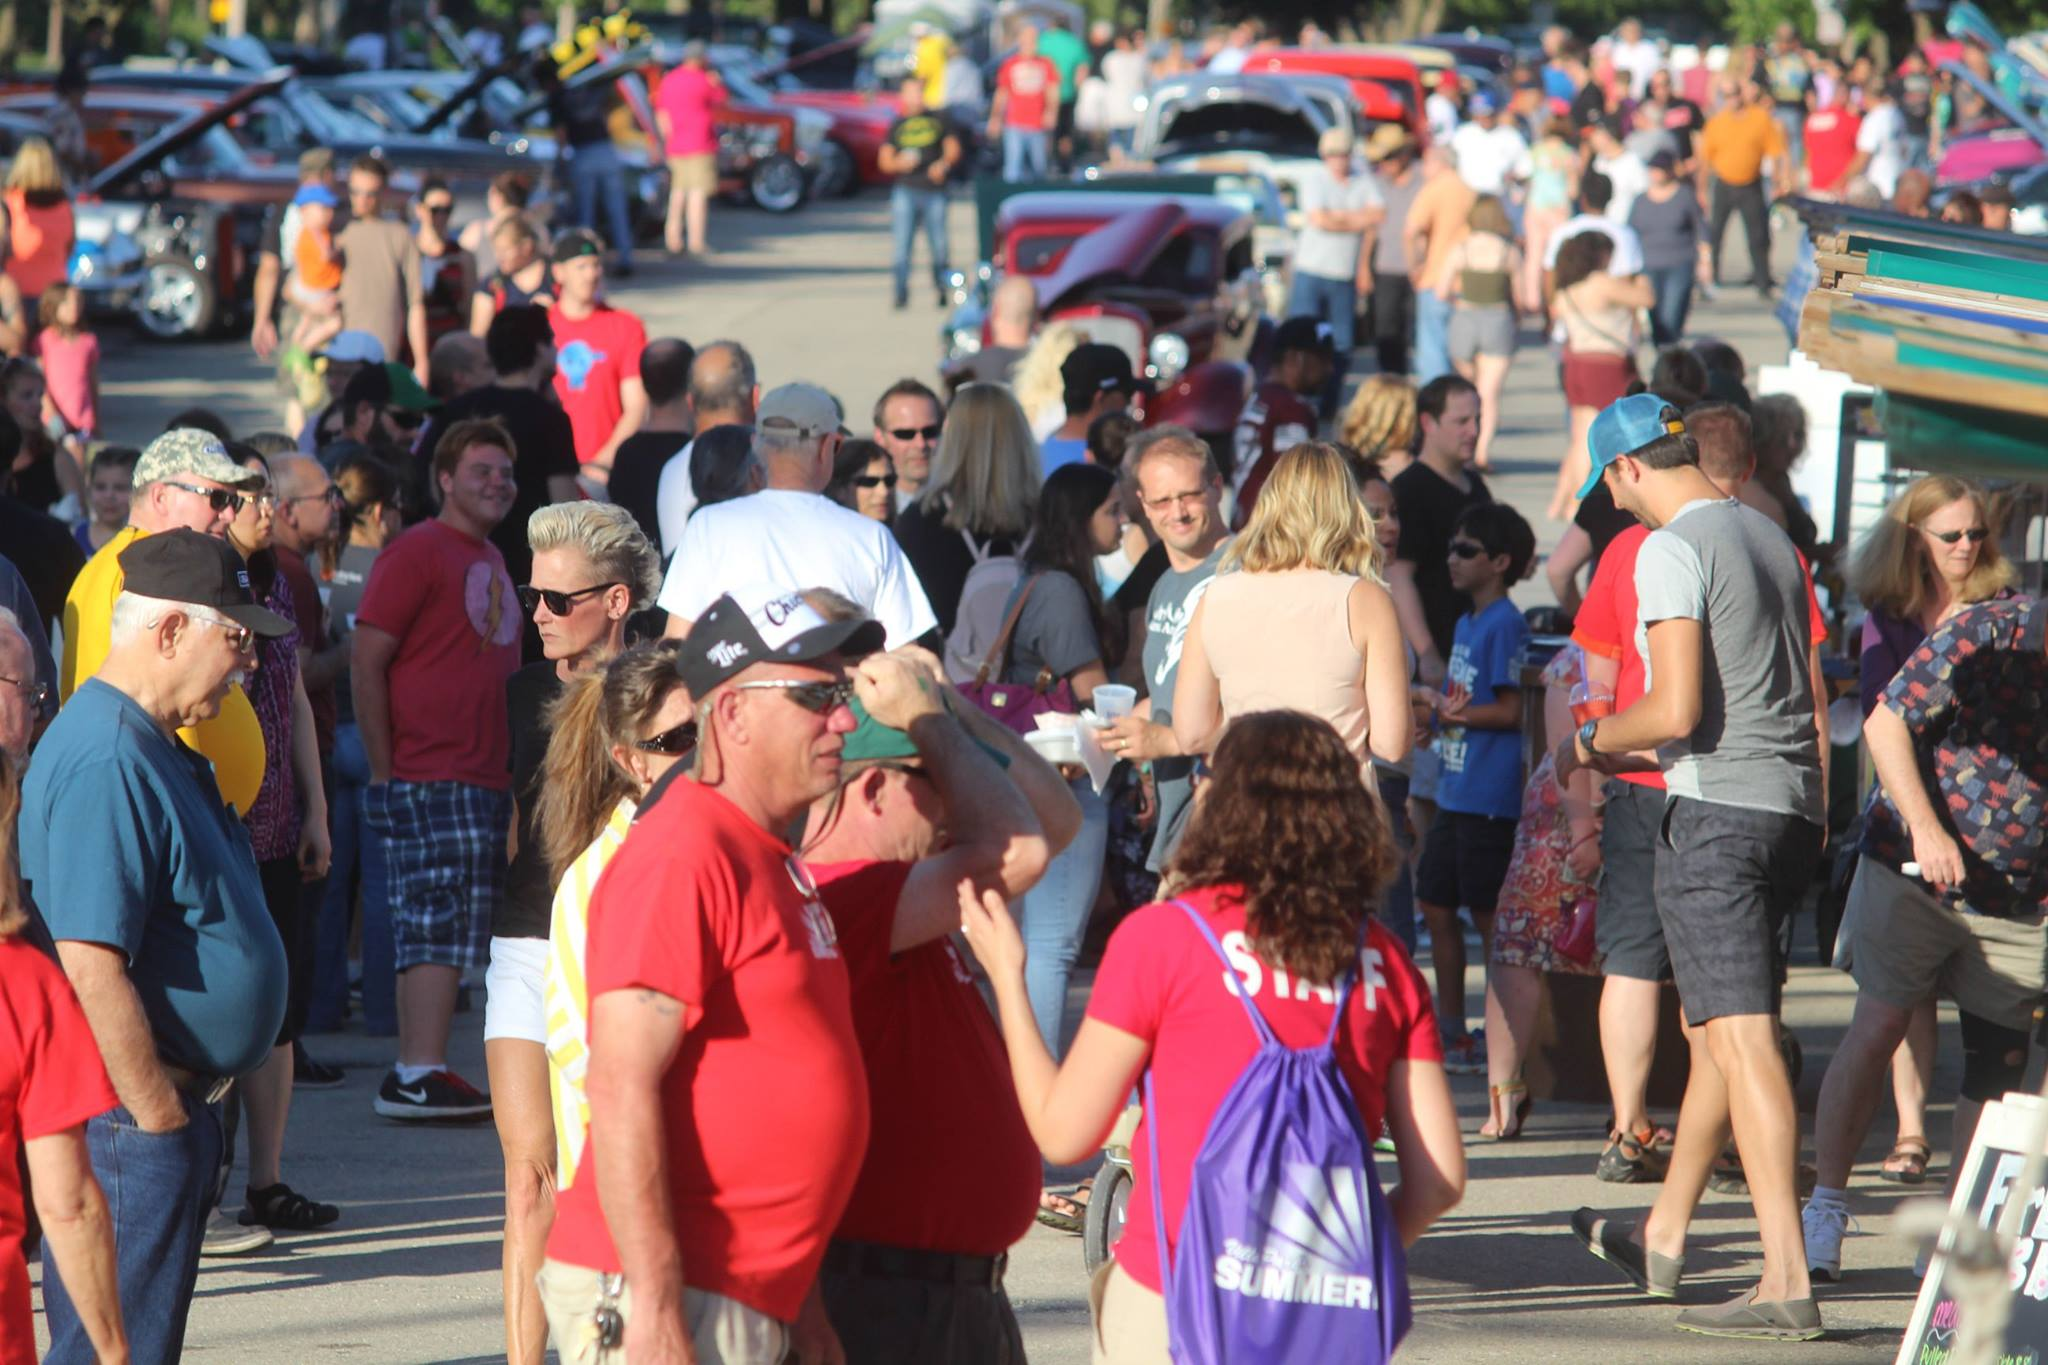 Crowded Street at Summerfest